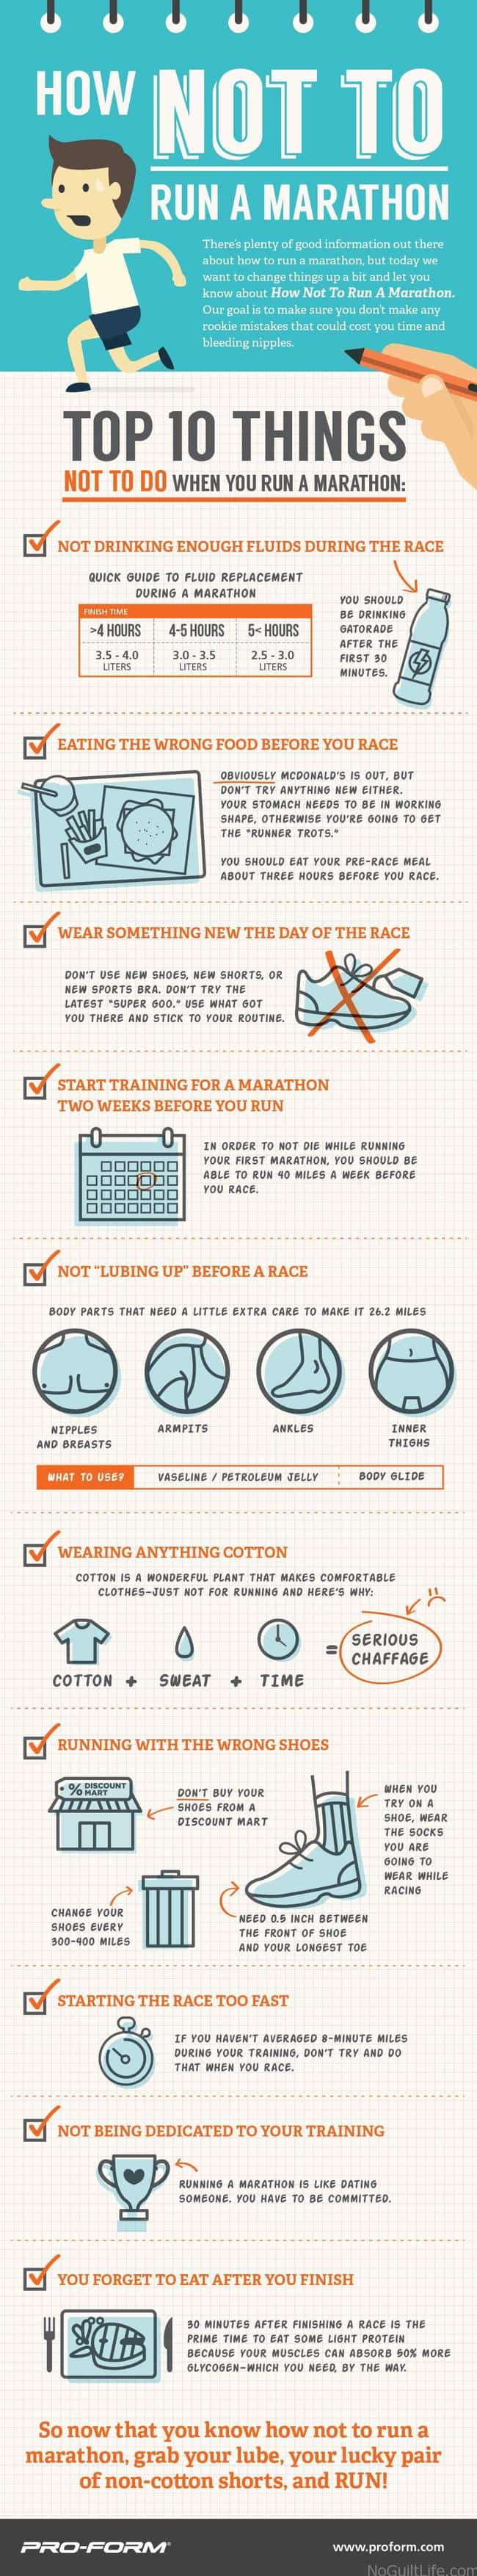 Running the Walt Disney World Marathon in 2018? Today starts your 29-week Galloway training. Marathon training tips (not to do) for your marathon training.